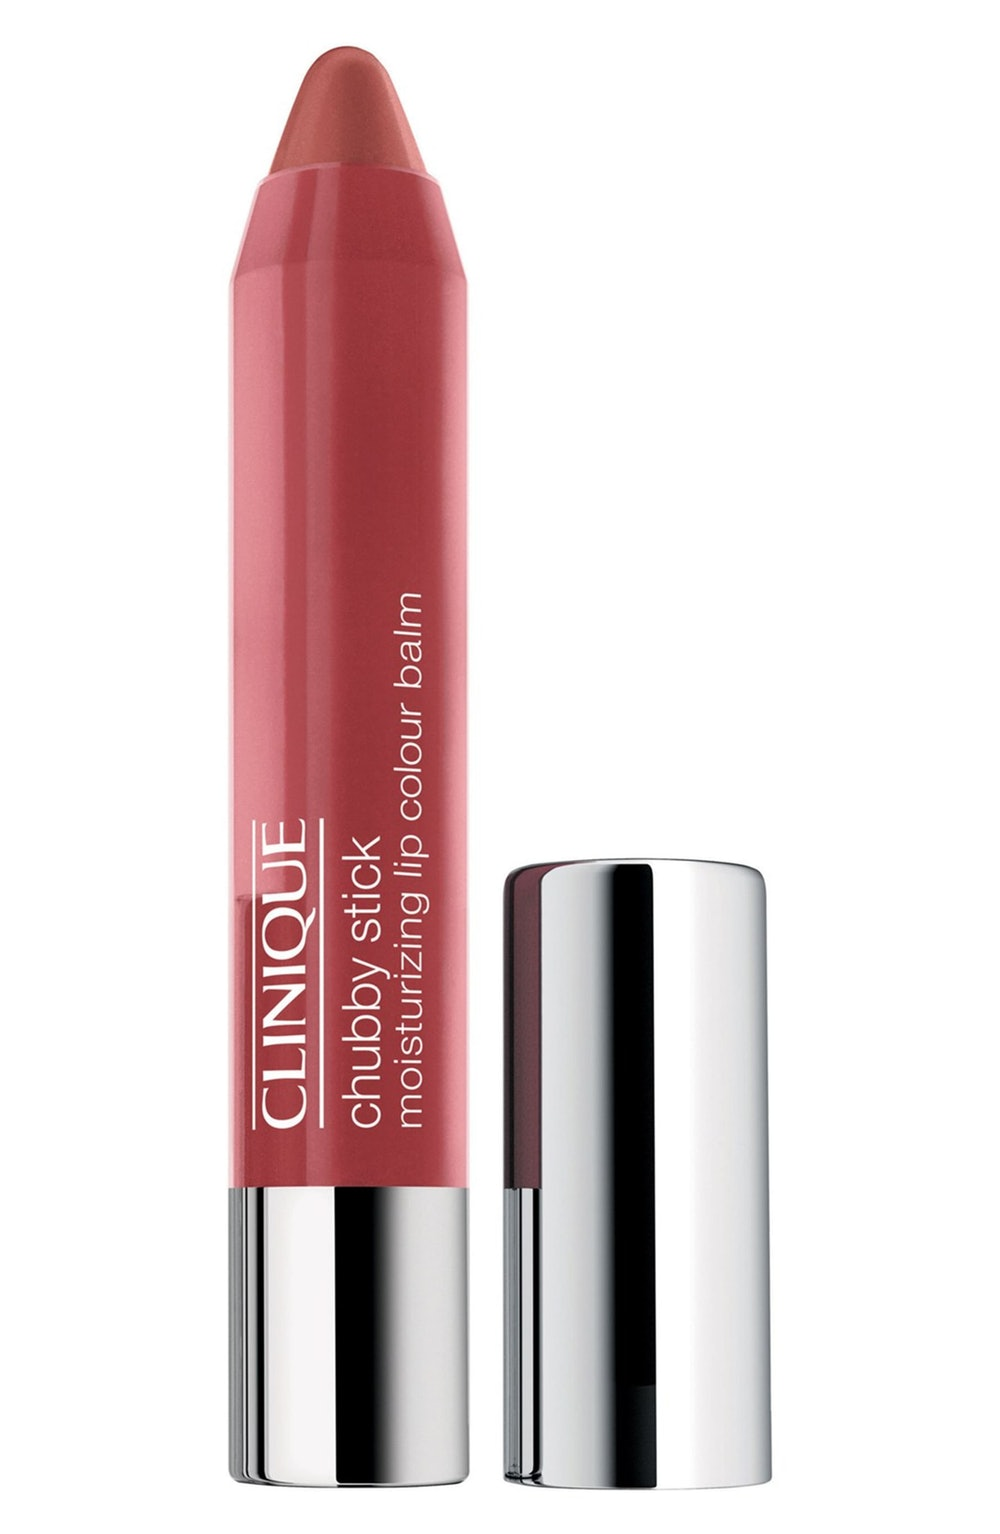 Chubby Stick Moisturizing Lip Color Balm